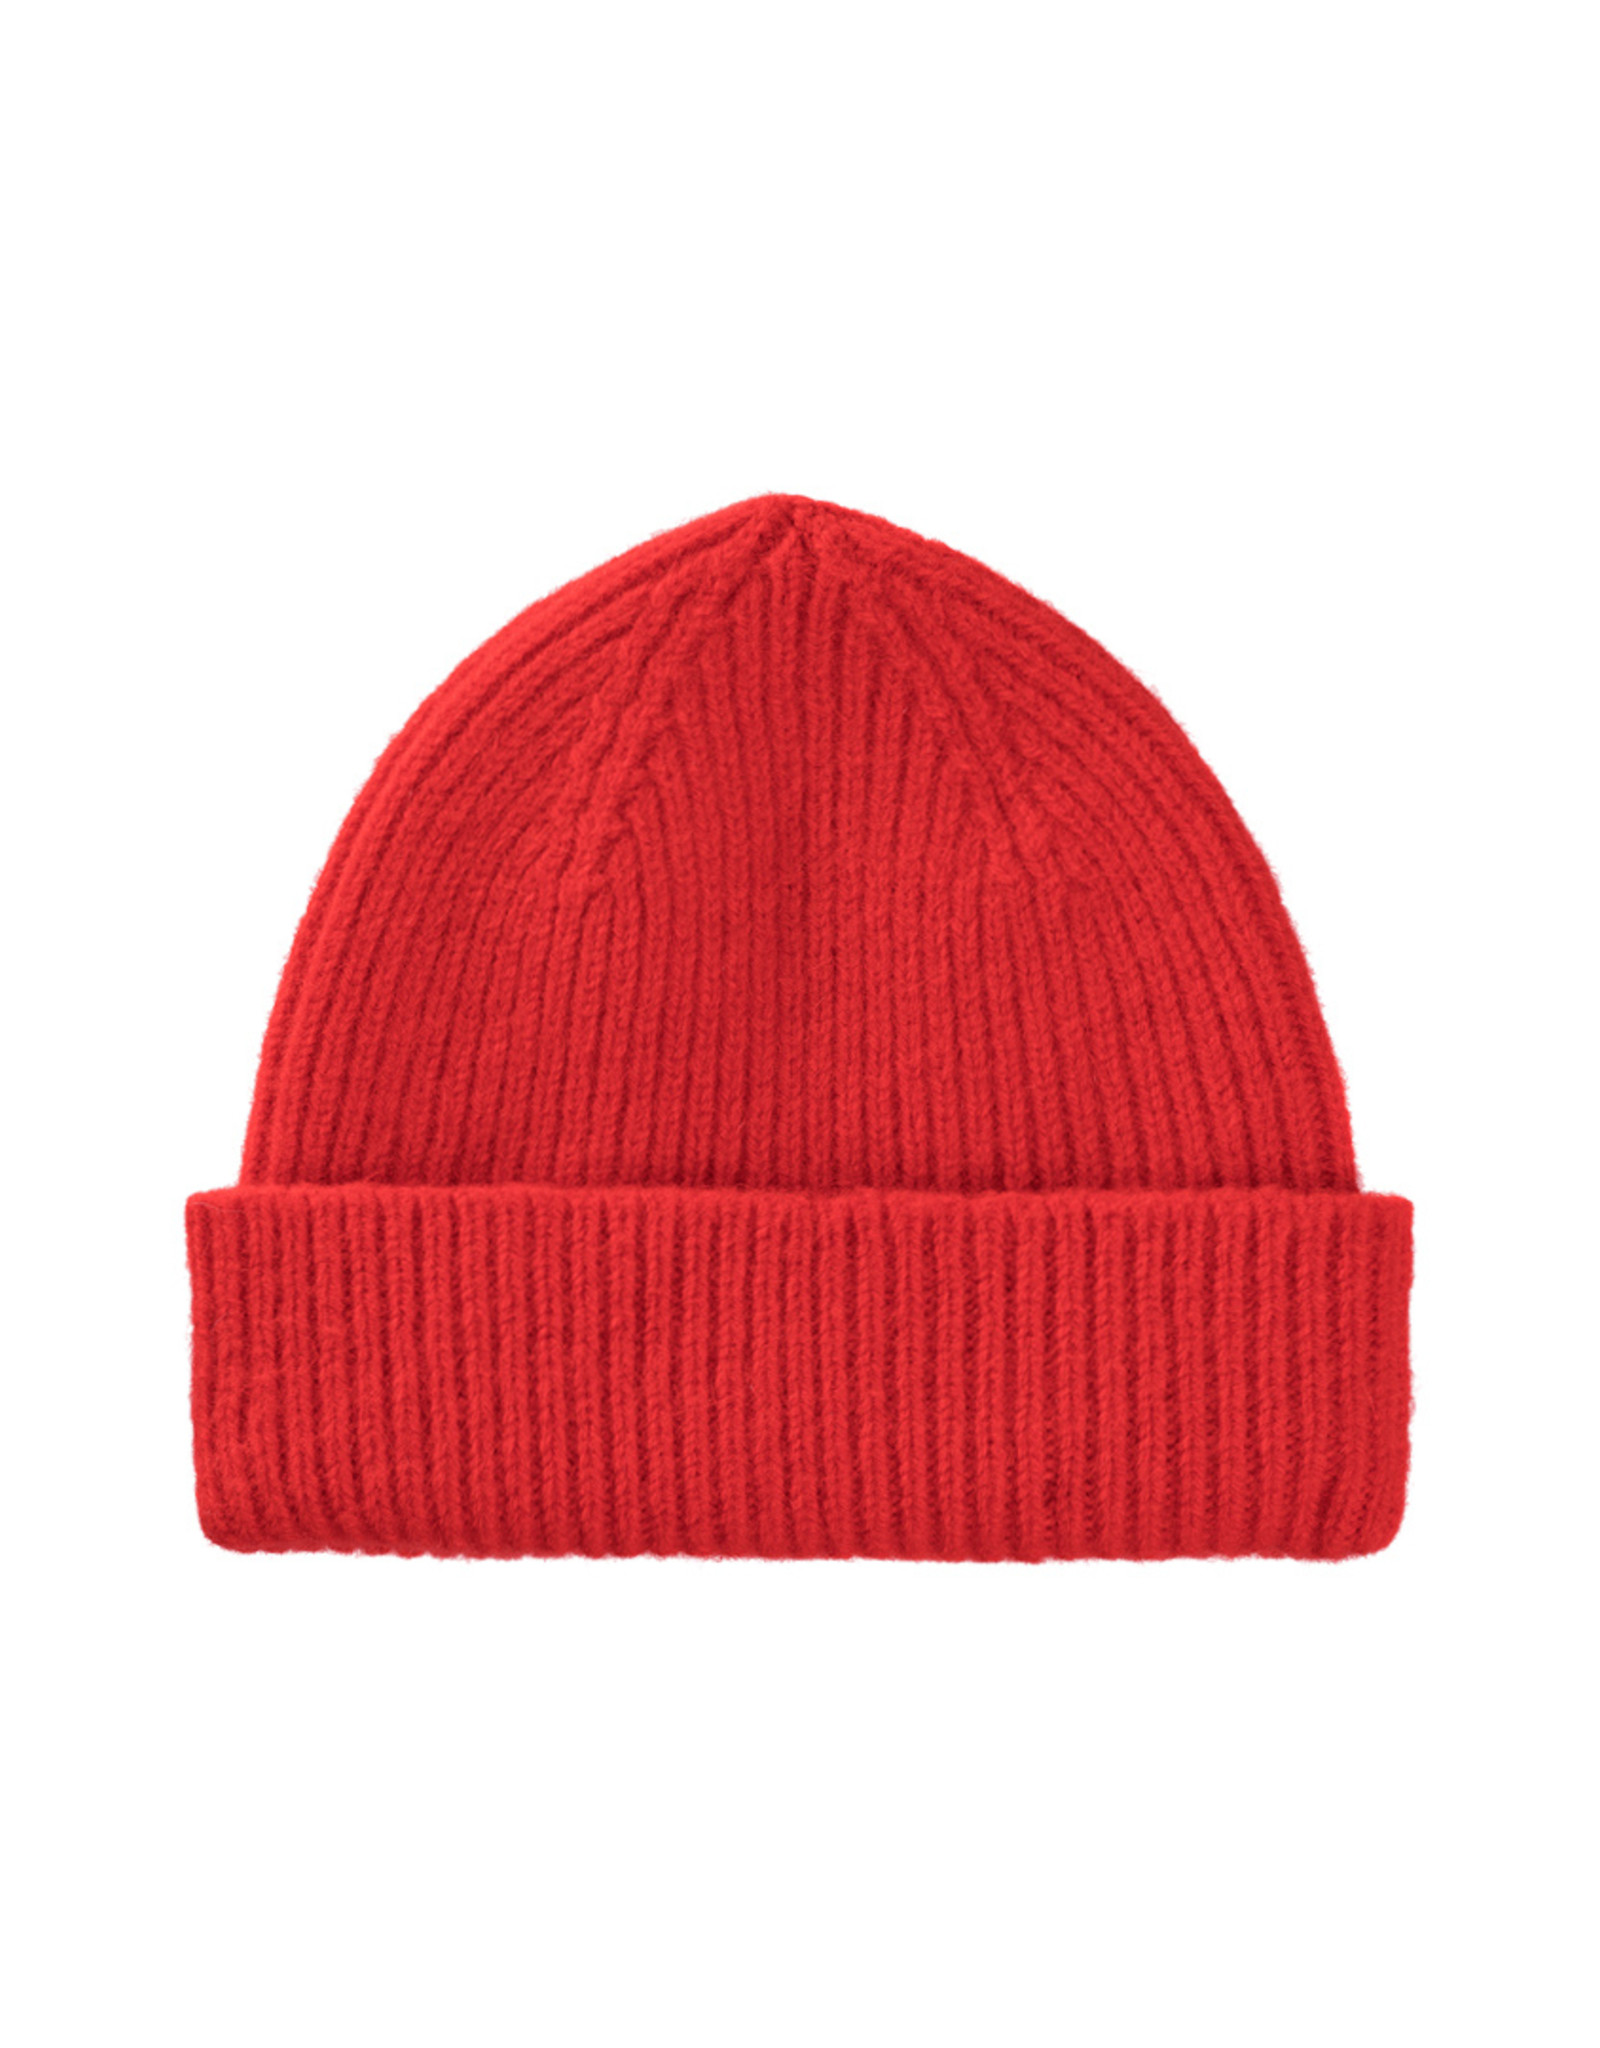 Le Bonnet - Tuque